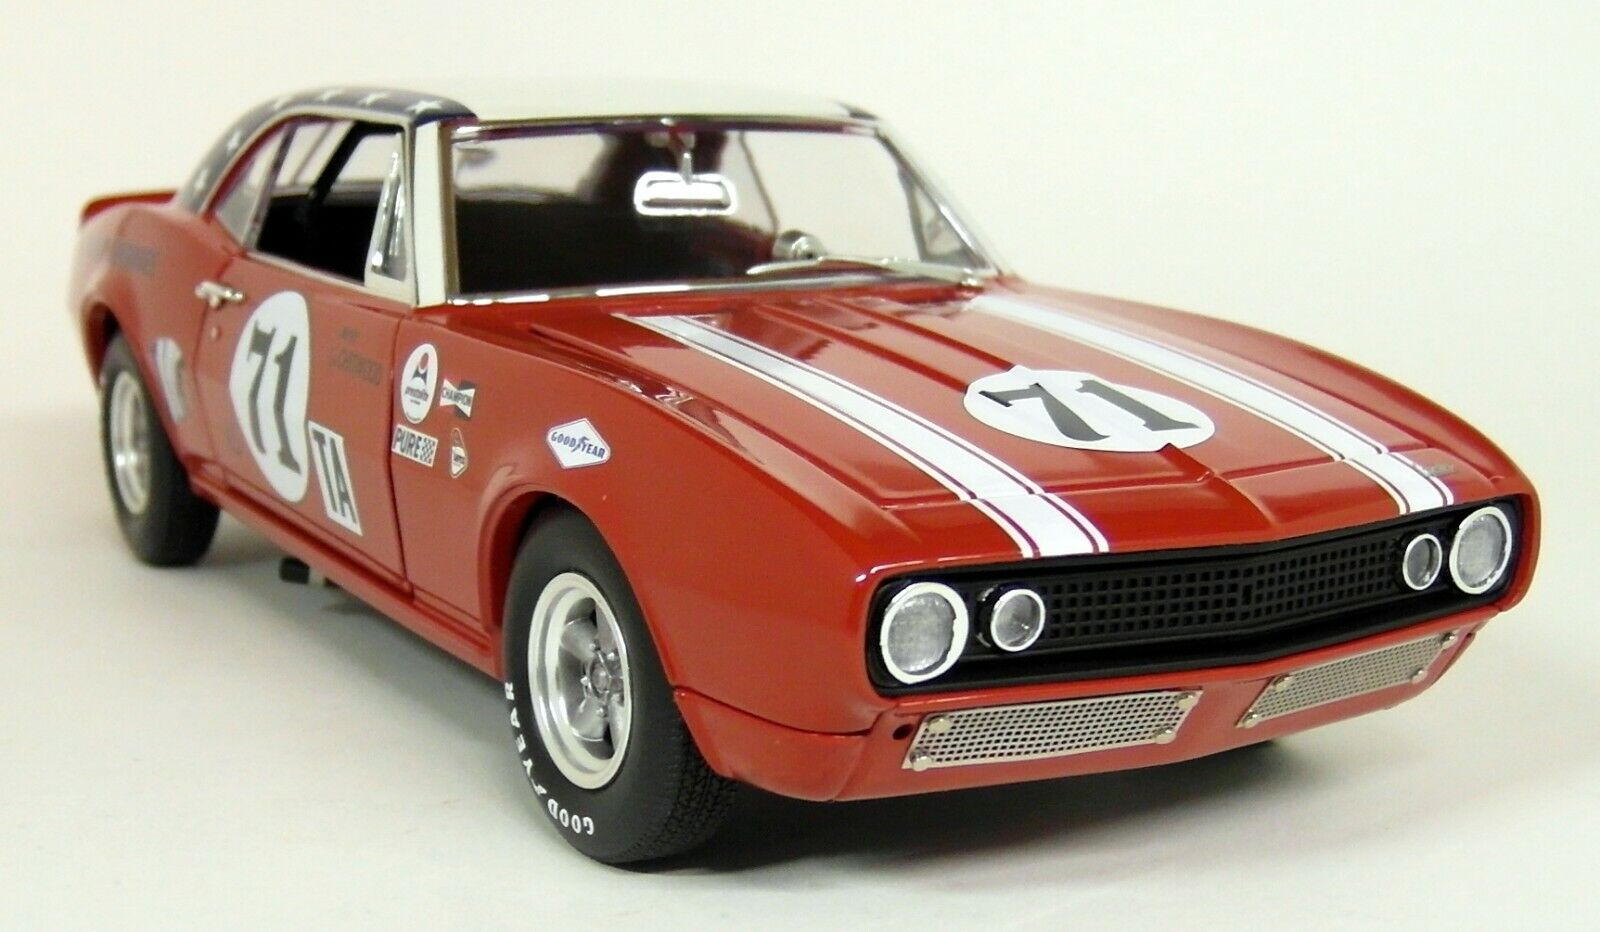 Acme 1 18 Scale 1967 Chevrolet Camaro 1968 Daytona 24H Red diecast Model Car